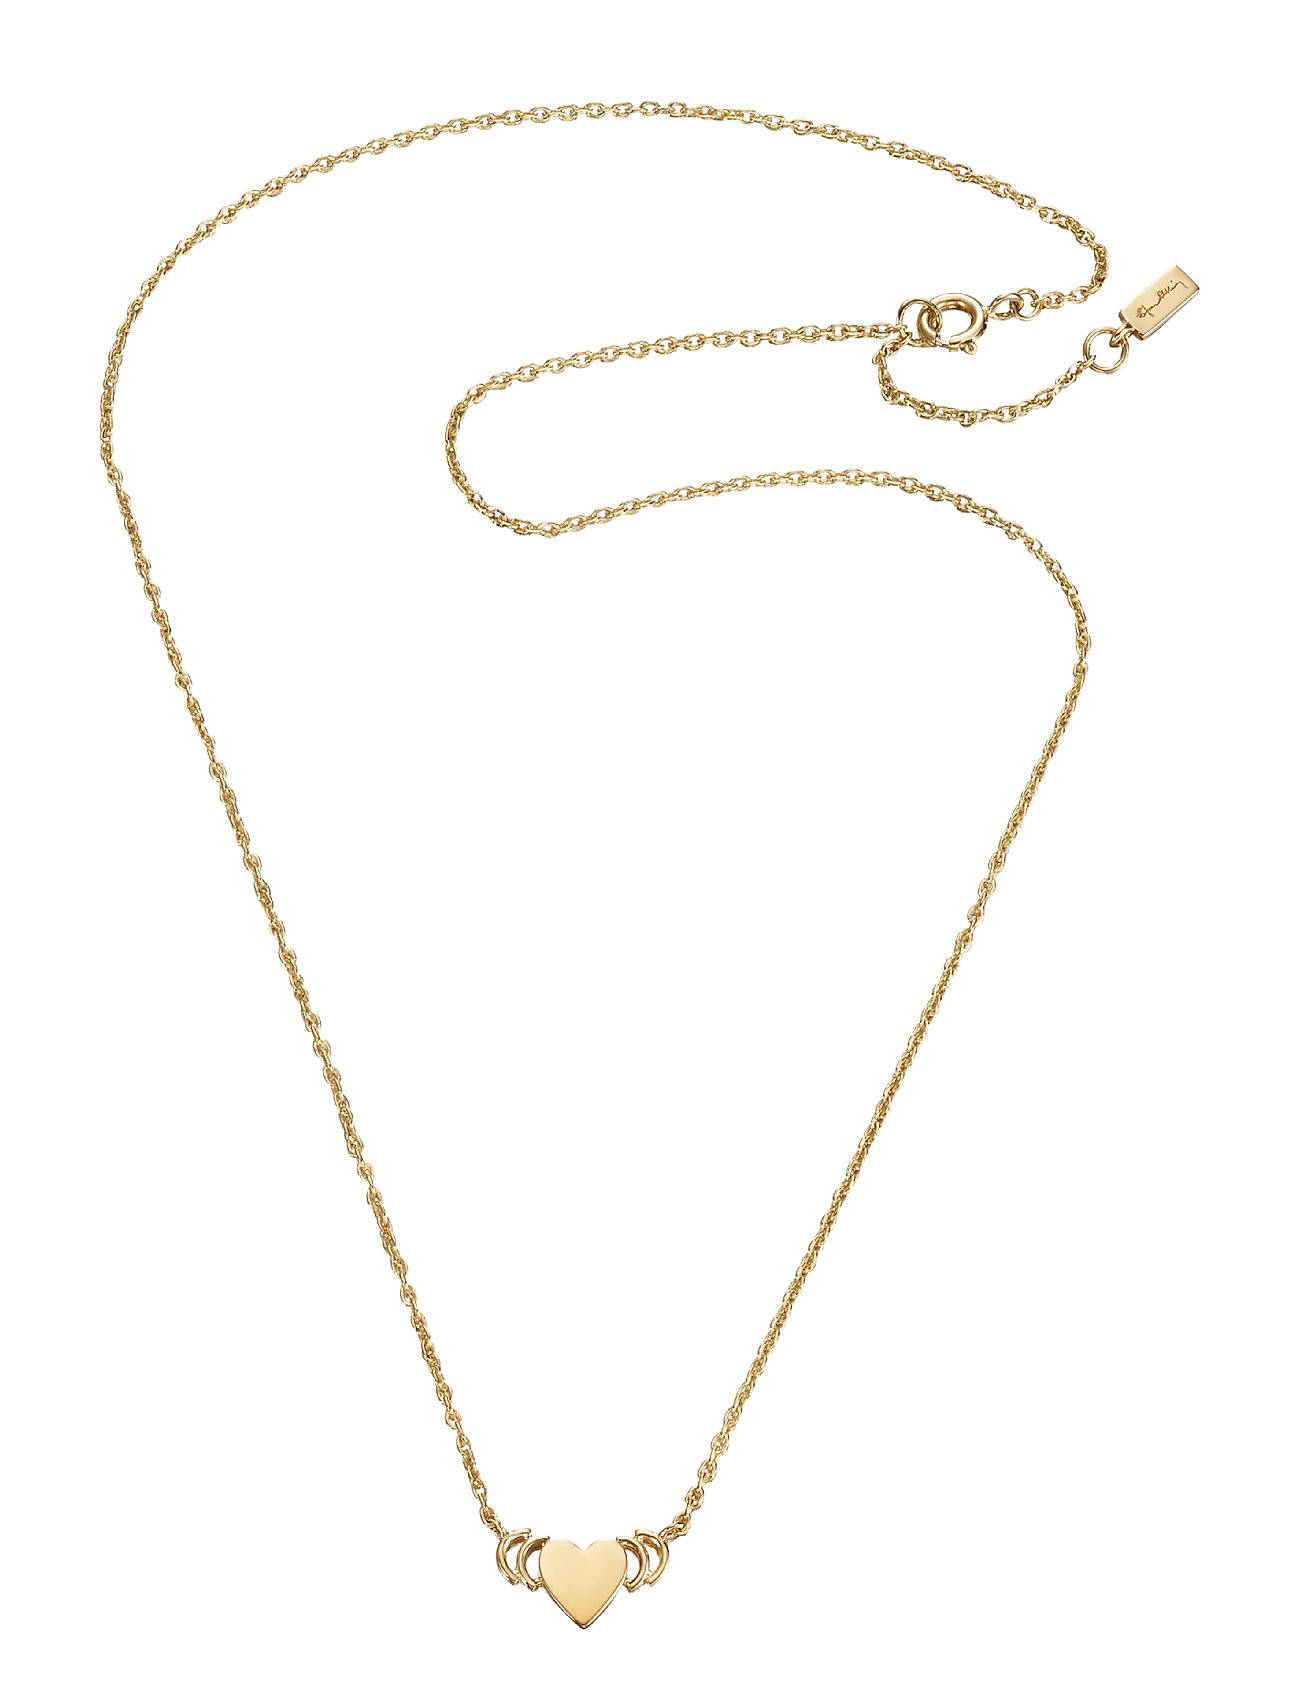 Efva Attling With Love Necklace